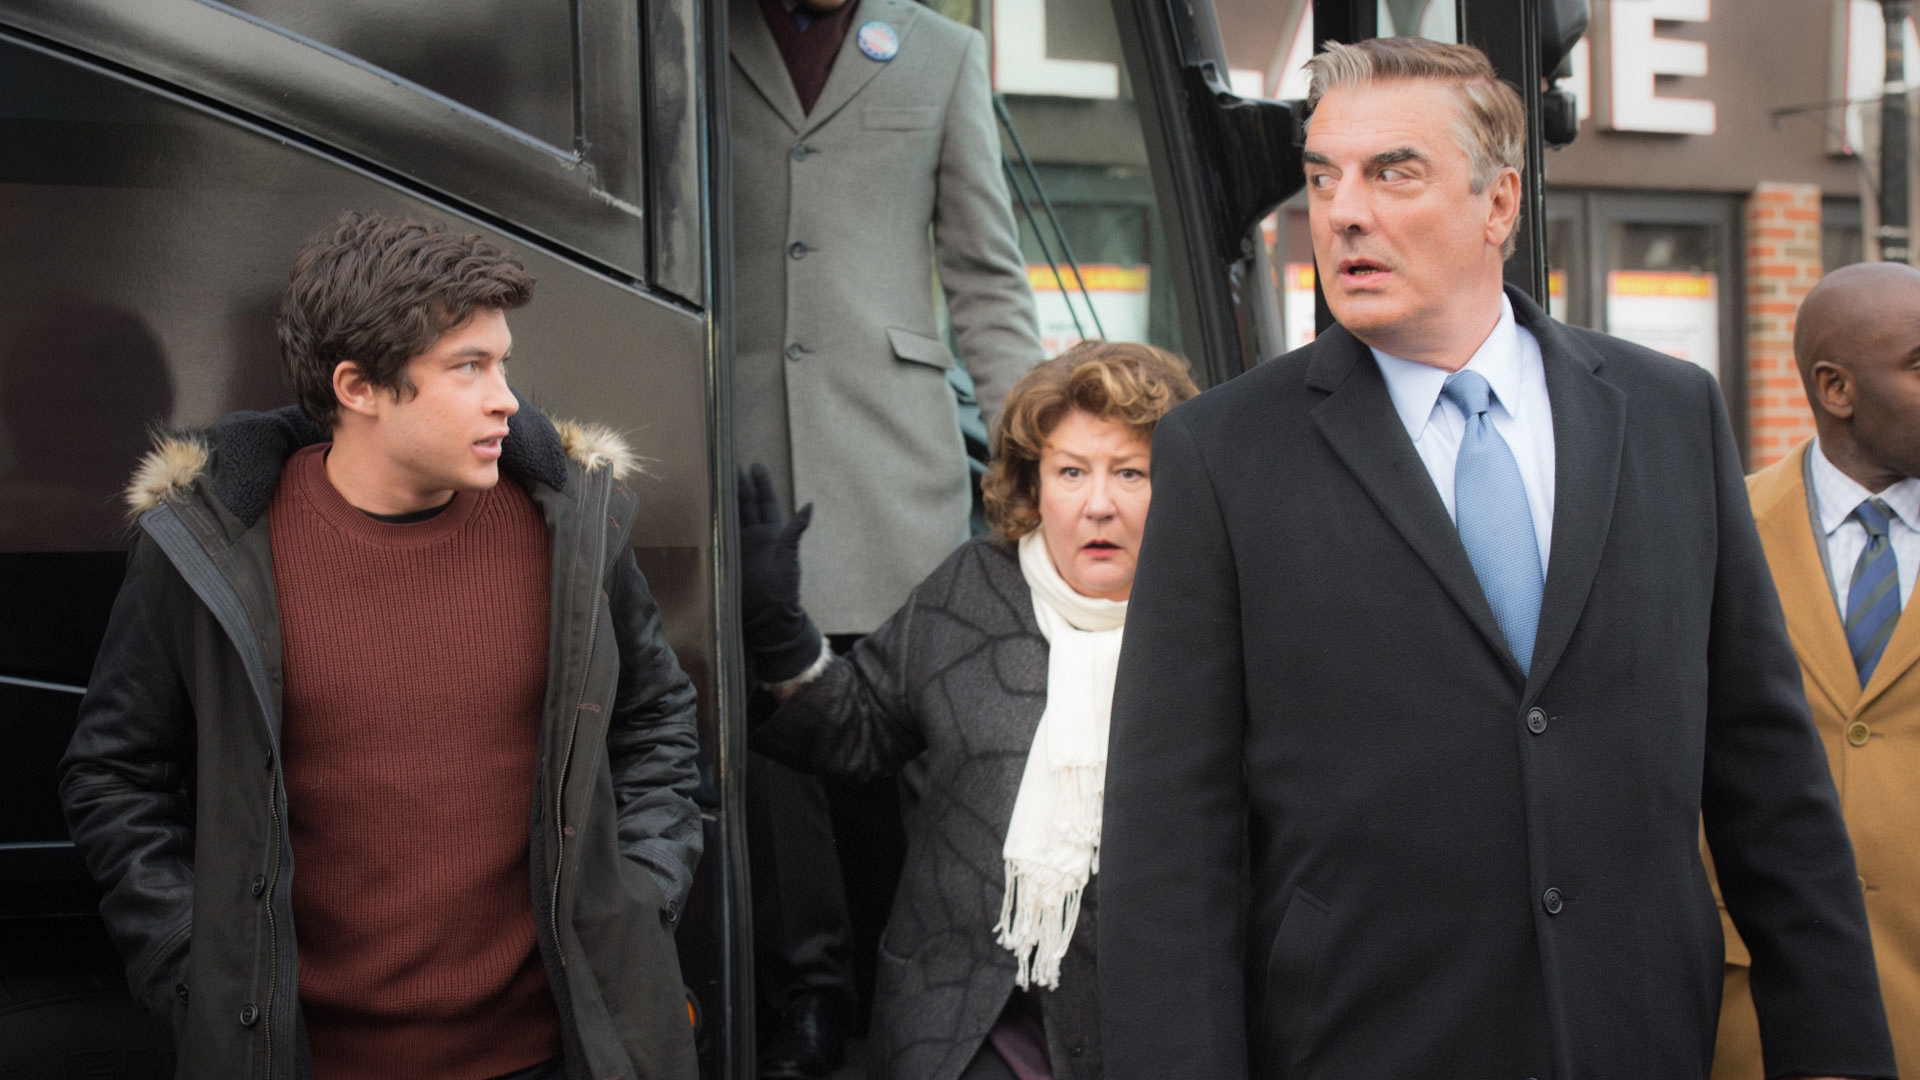 Graham Phillips as Zach Florrick, Margo Martindale as Ruth Eastman, and Chris Noth as Peter Florrick